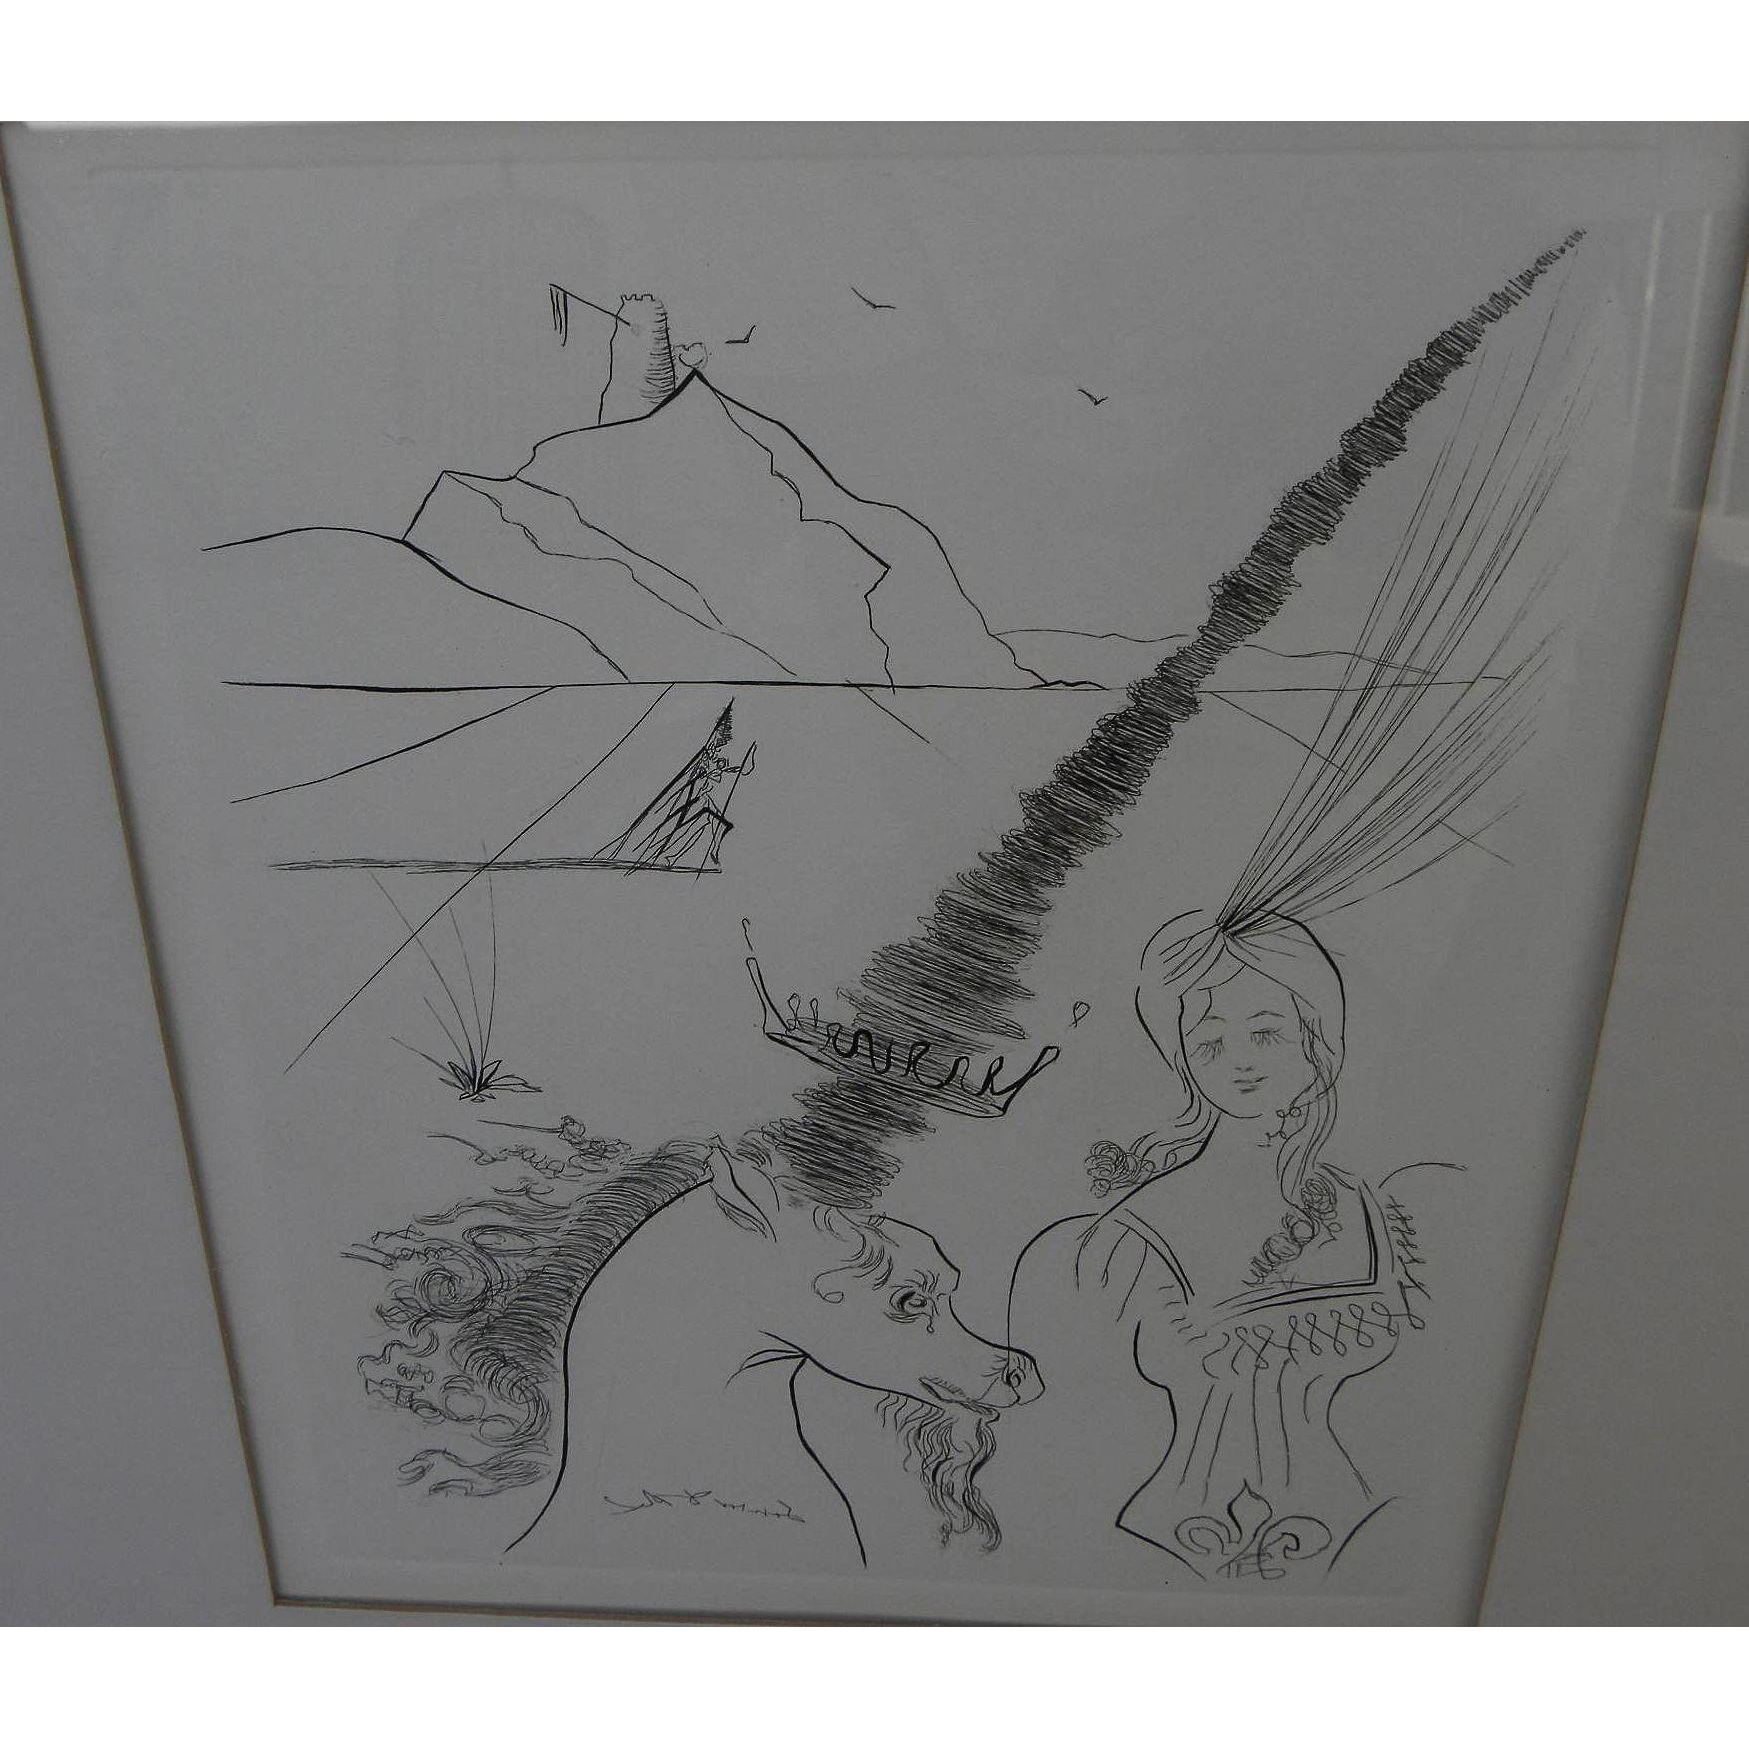 "SALVADOR DALI (1904-1989) original etching ""The Lady and the Unicorn"" of 1966 by the Surrealist master artist"